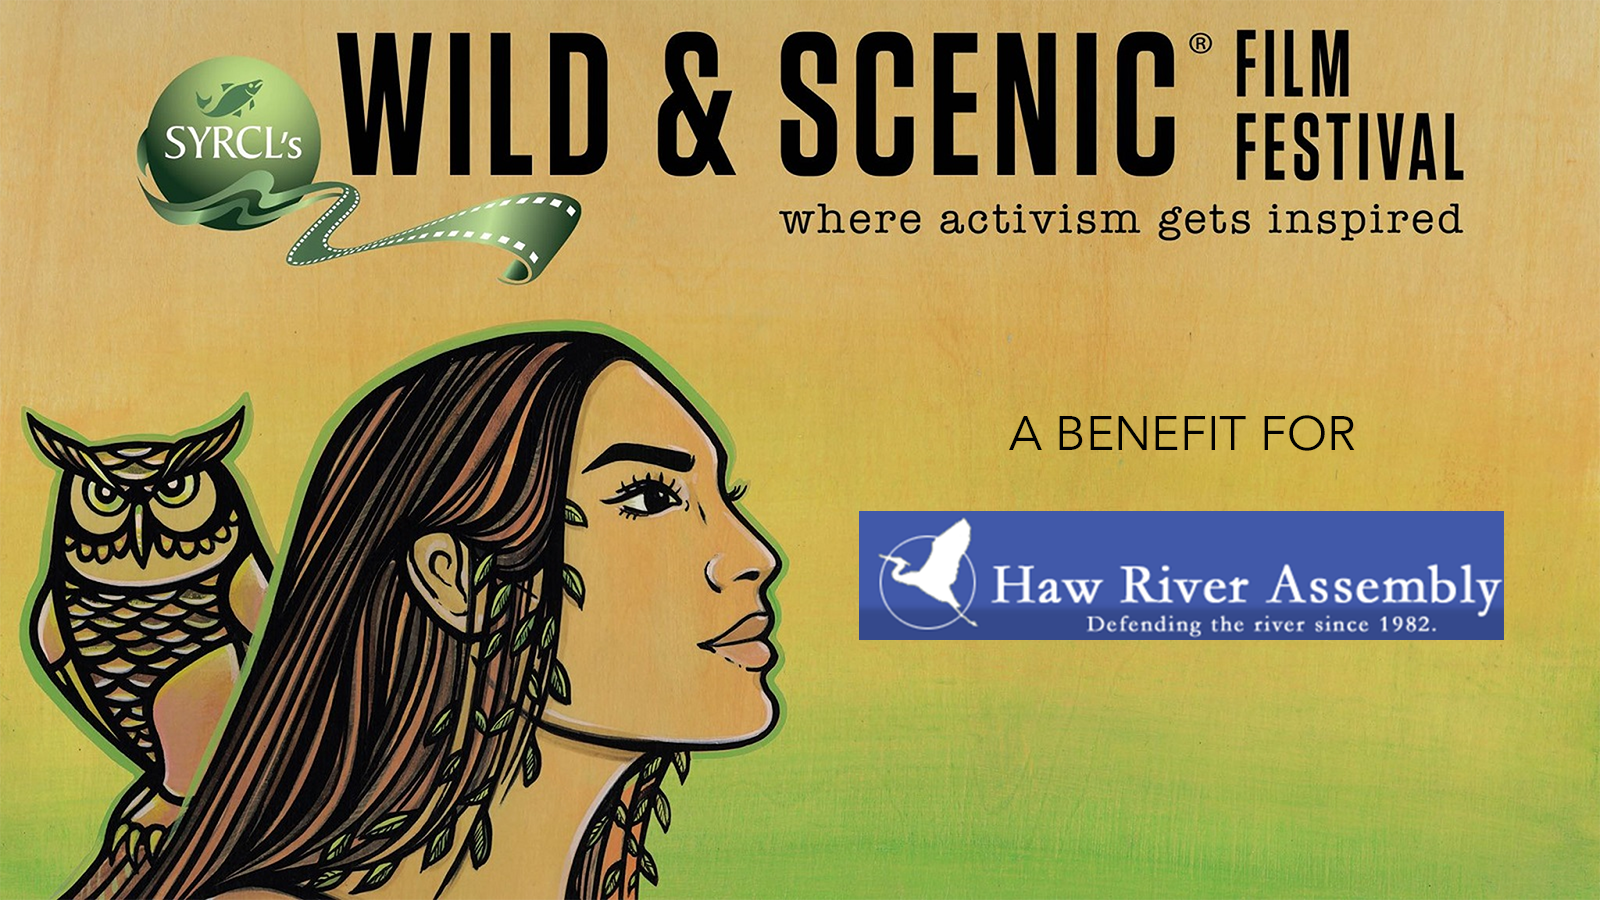 Chapel Hill Haw River Assembly Present SYRCL's Wild & Scenic Film Festival Live Event